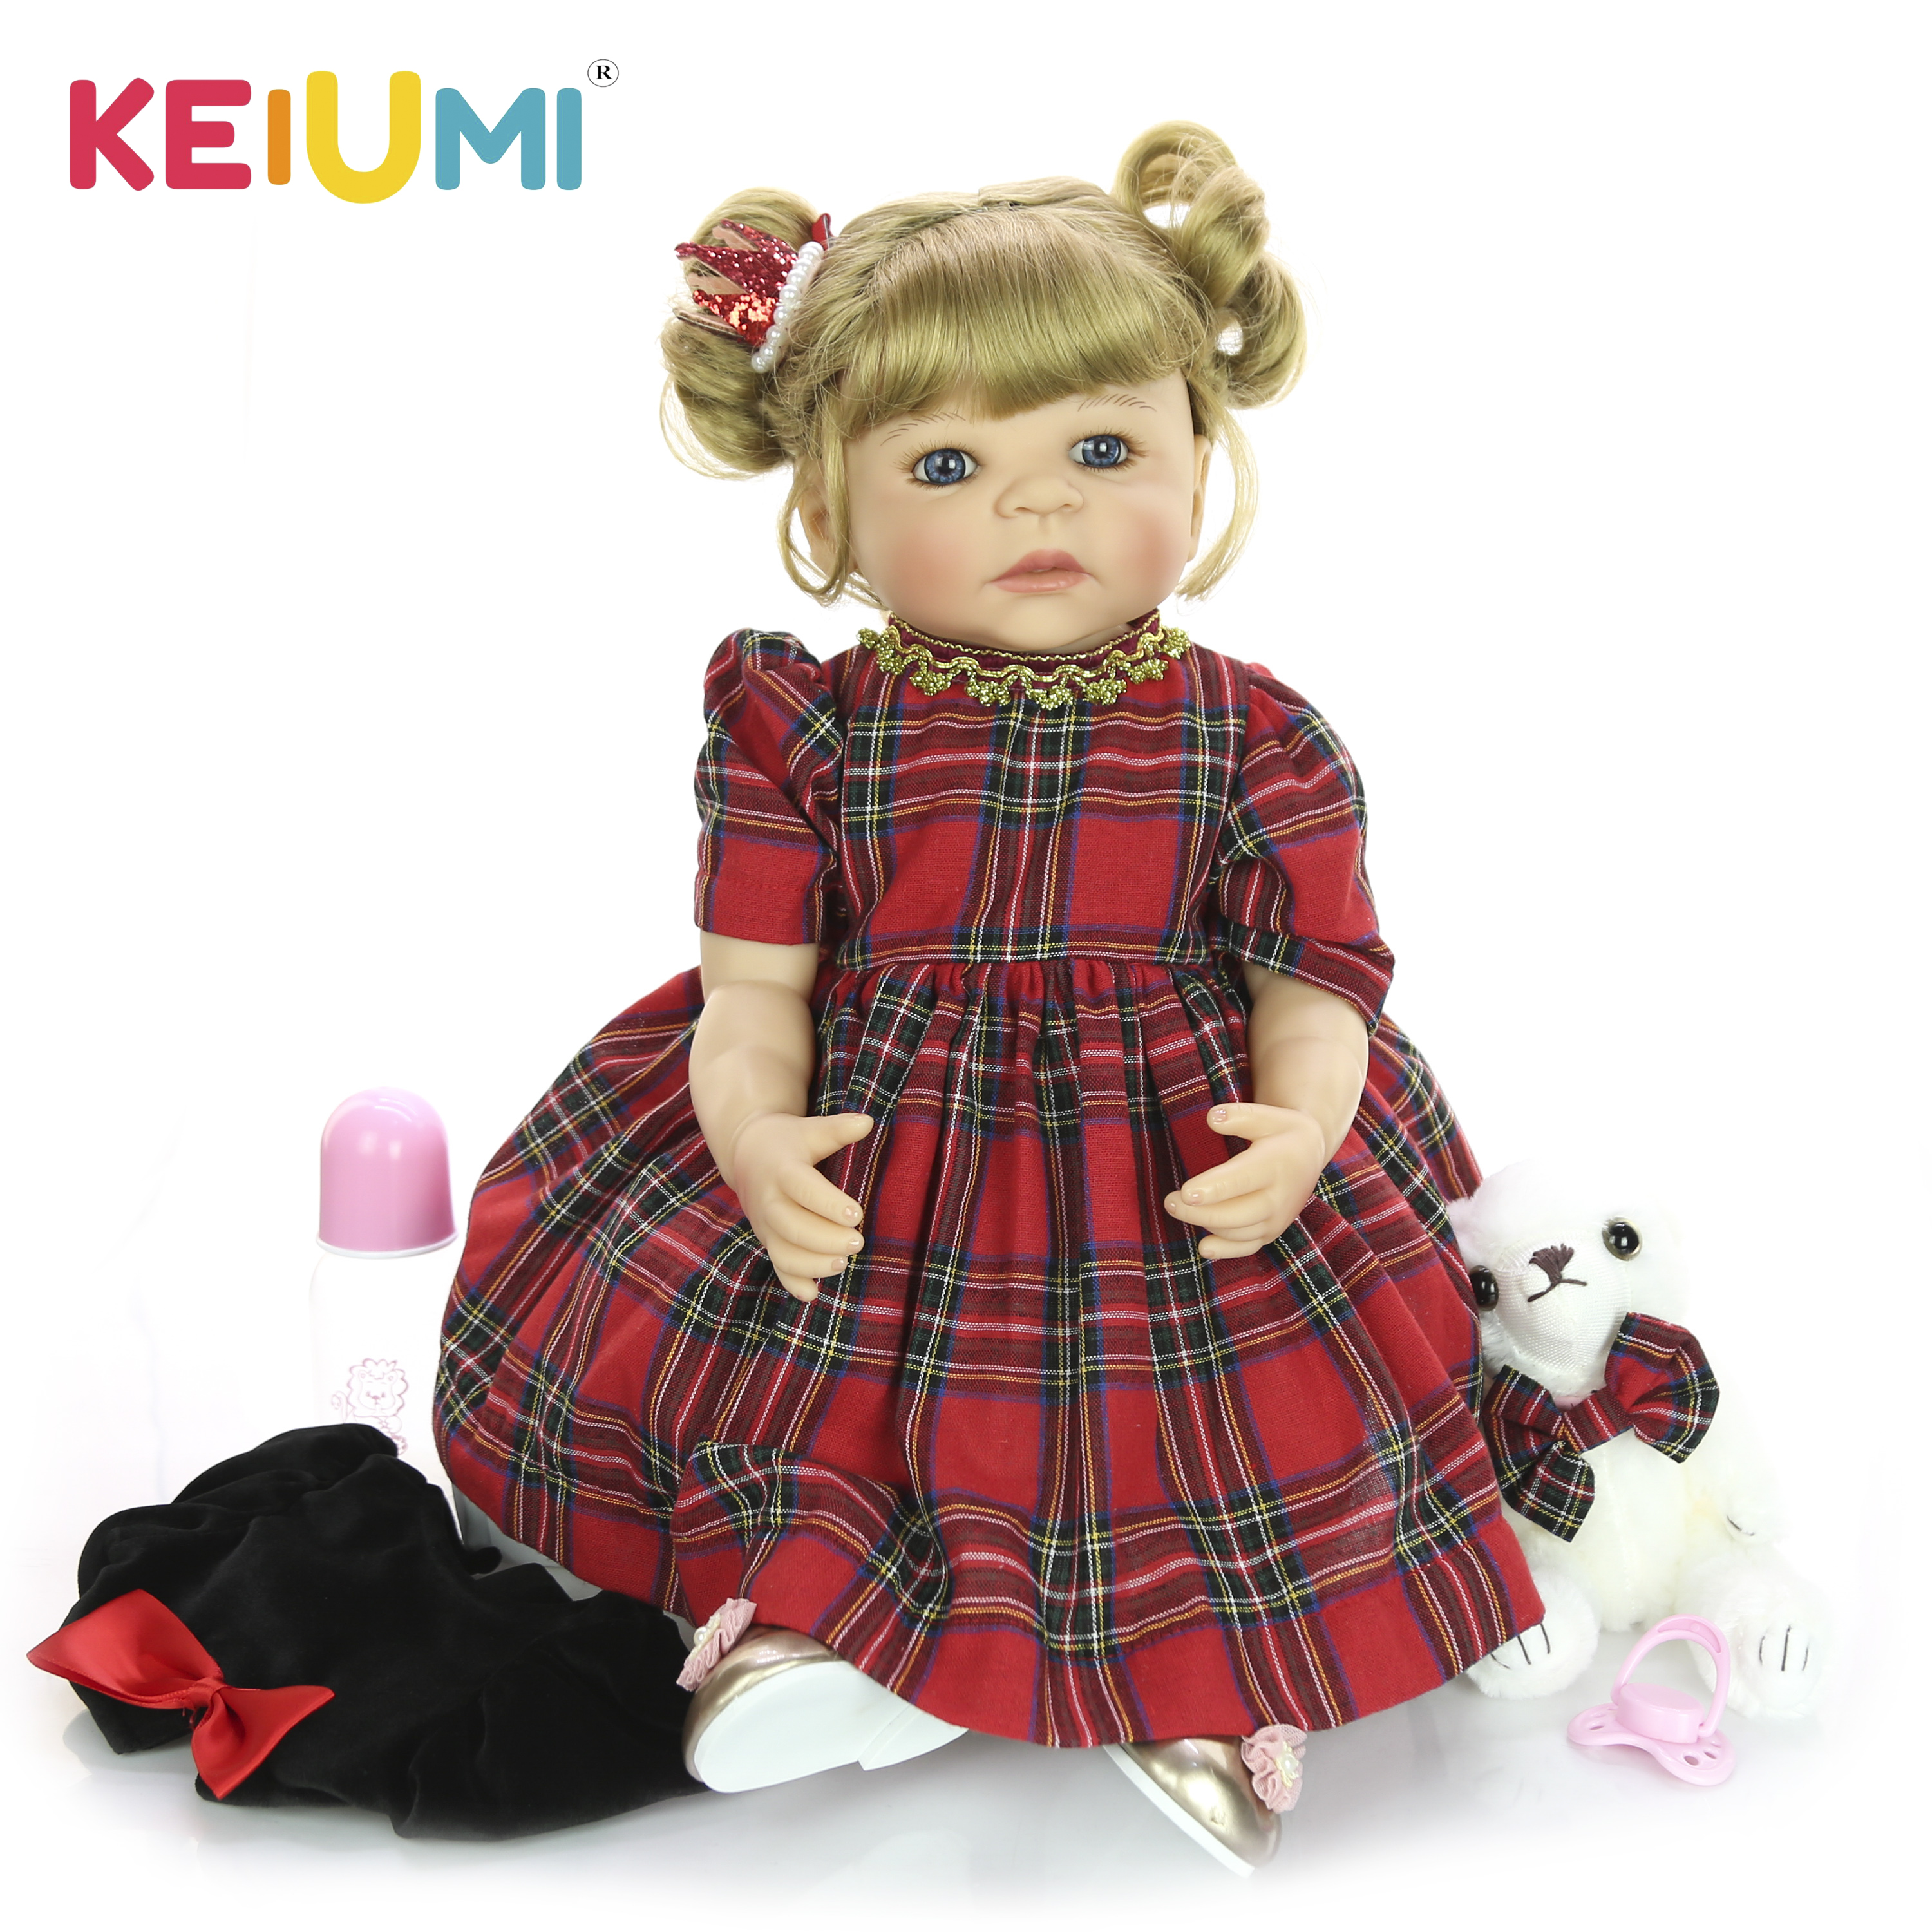 KEIUMI New Style Baby Reborn Alive Doll 22 55 cm Silicone Full Body Princess Girl Doll